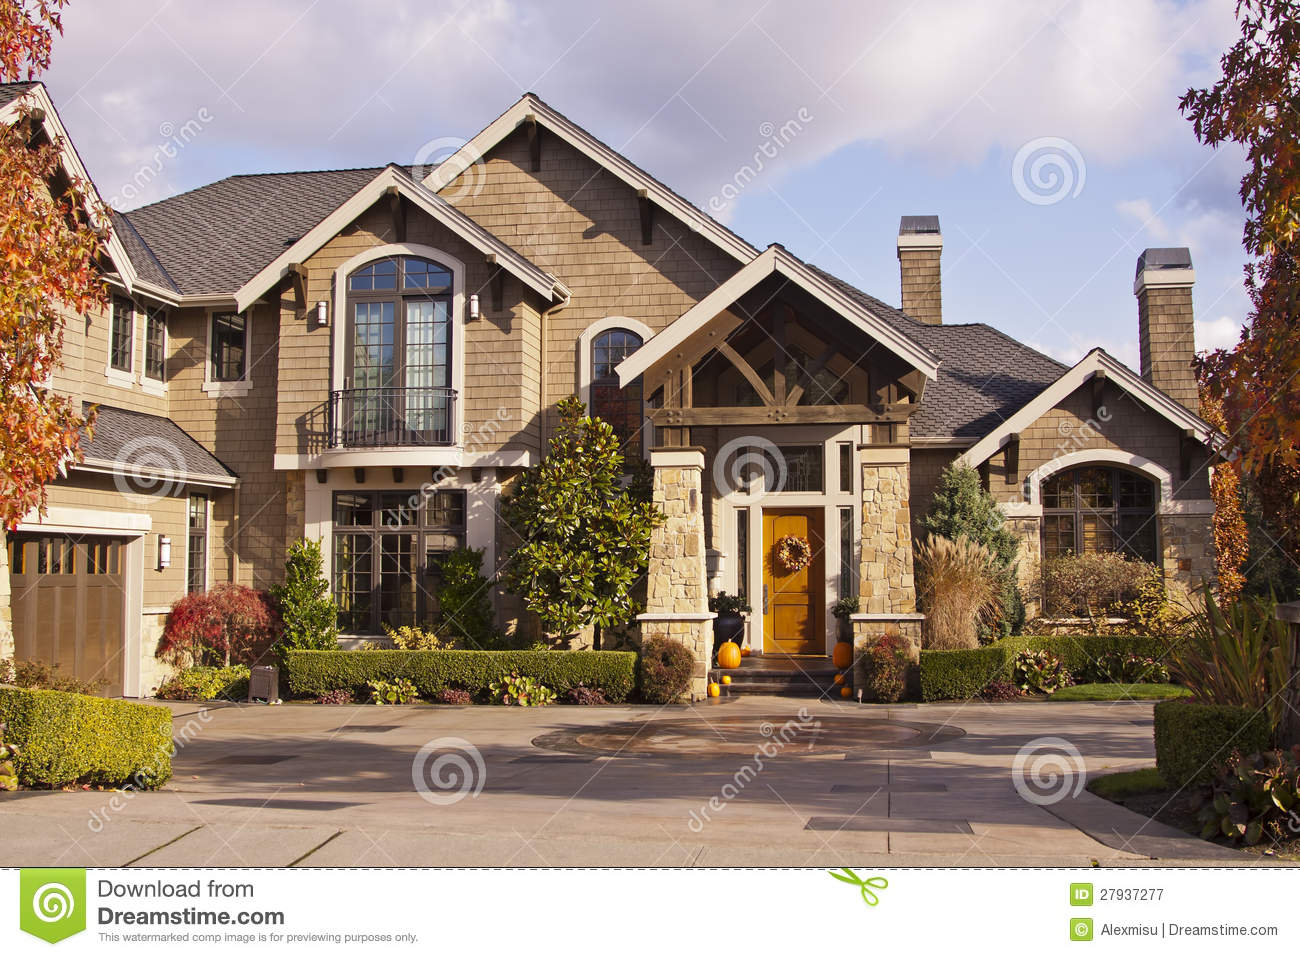 Modern luxury house royalty free stock photography image for Free luxury home images